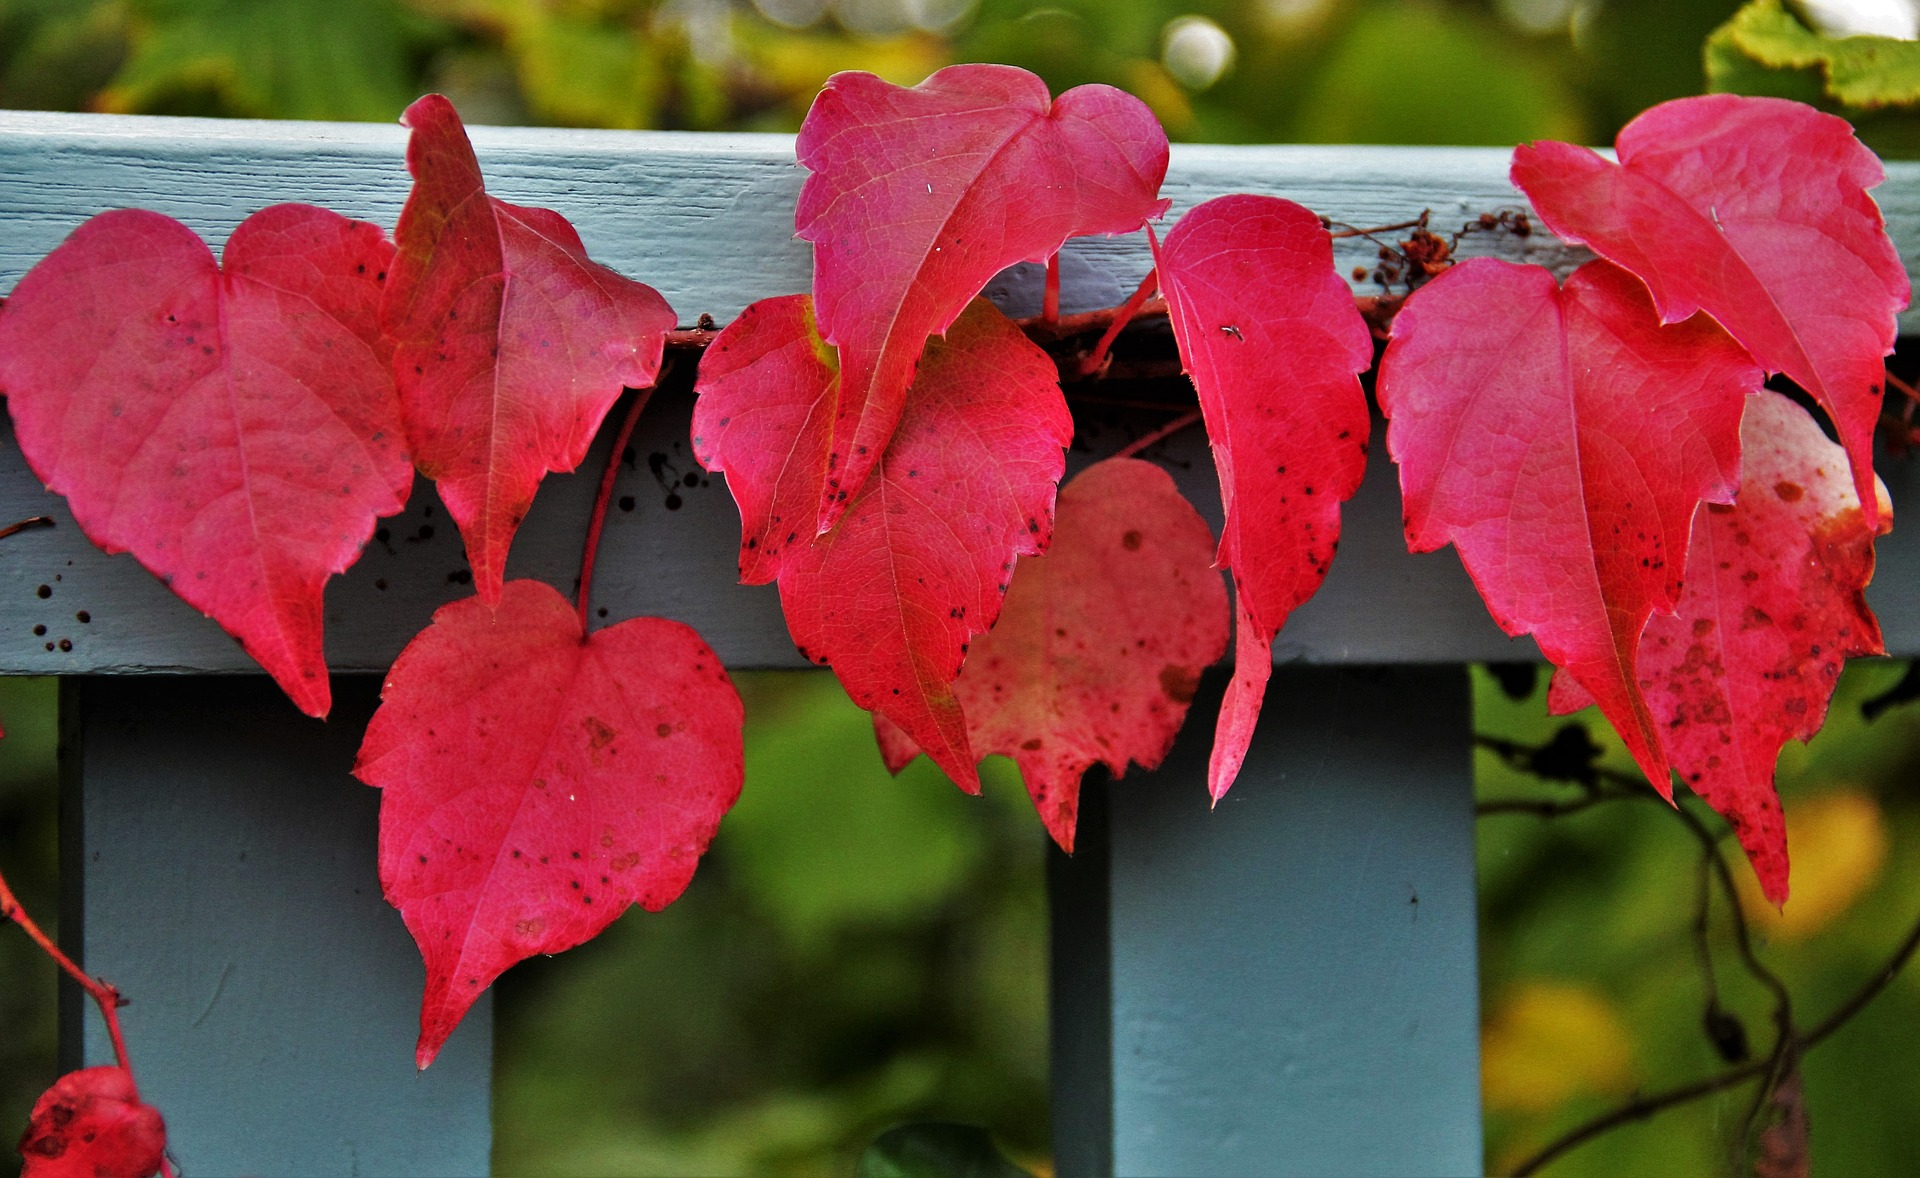 gardening 1 work for autumn preparing for winter on 14 october at